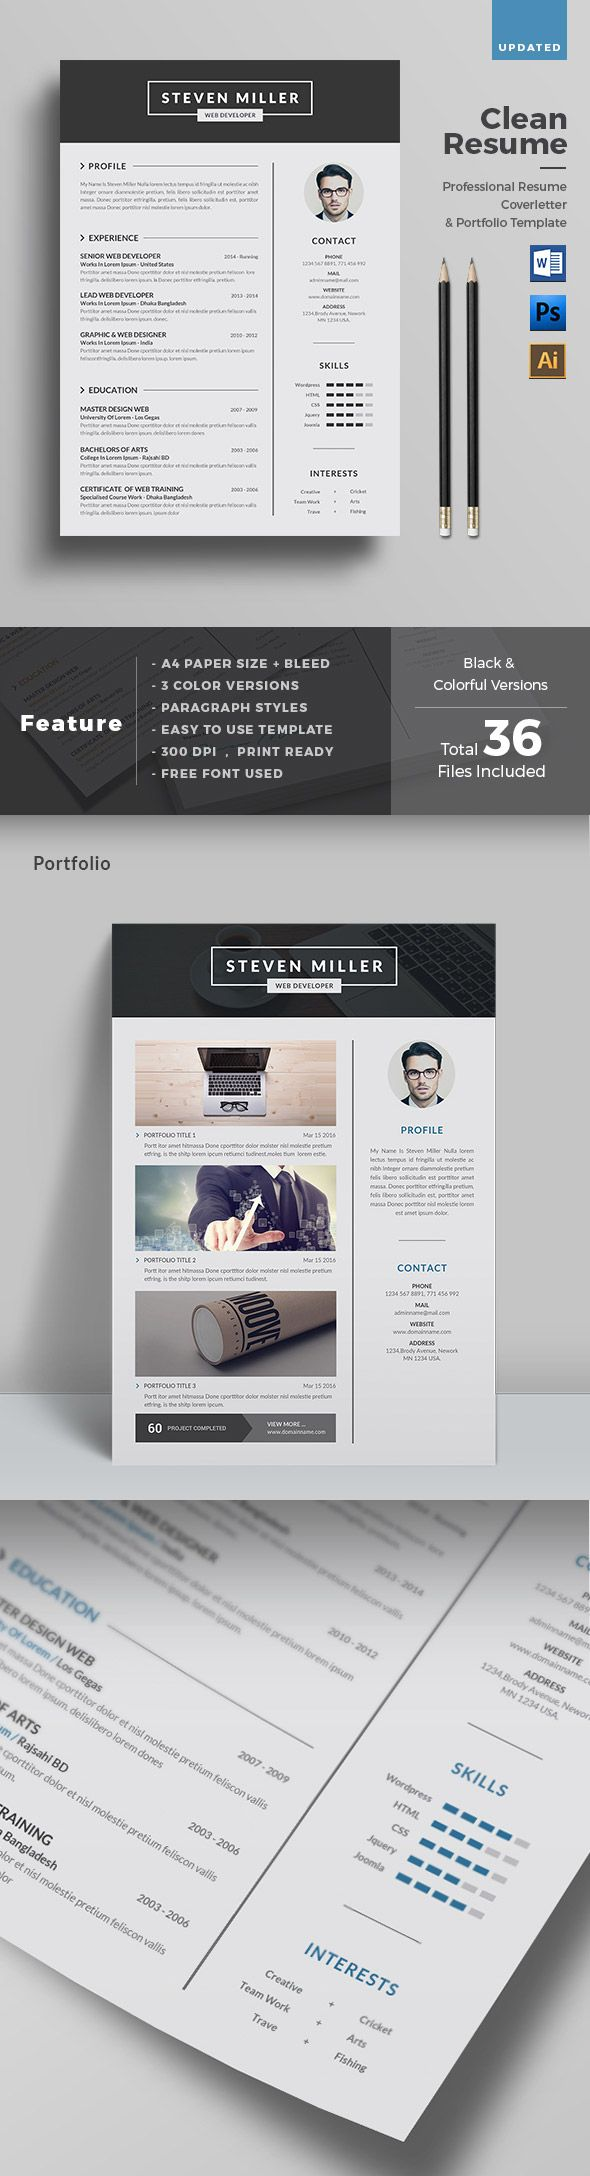 Clean Creative Resume Template   Pinteres